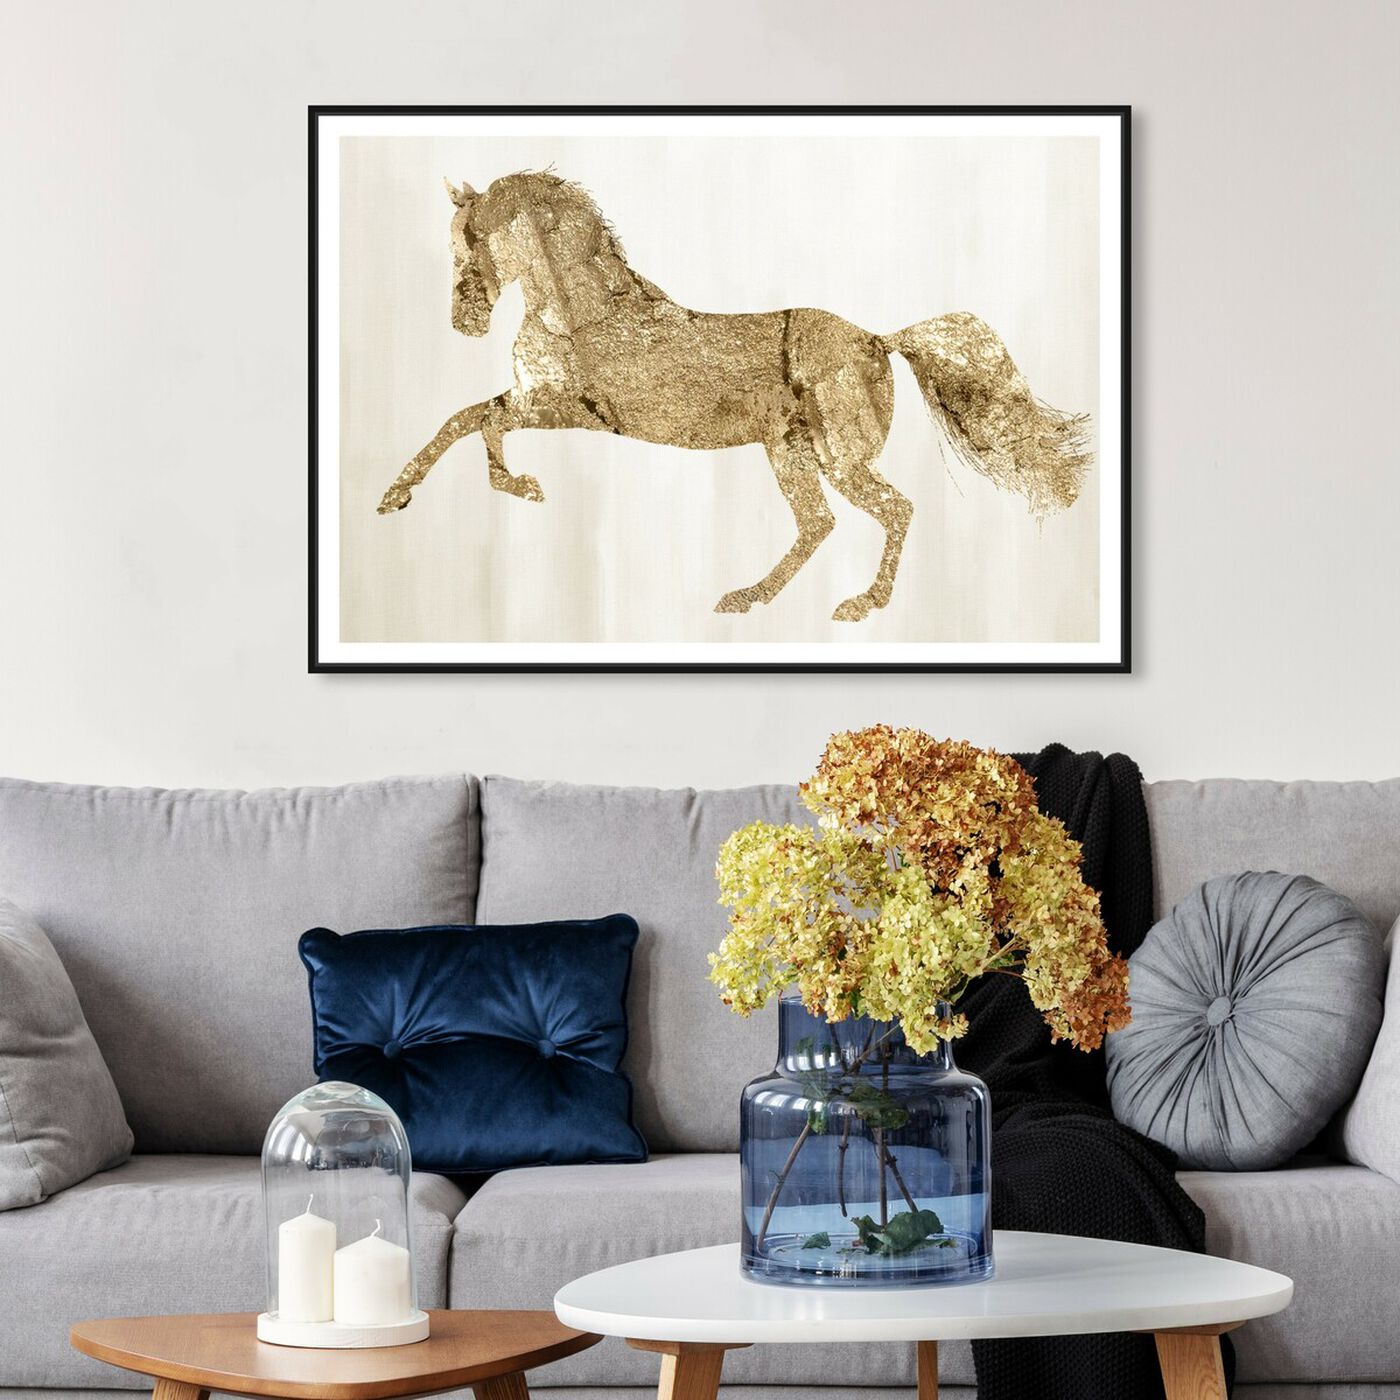 Hanging view of Gold Wild and Free featuring animals and farm animals art.